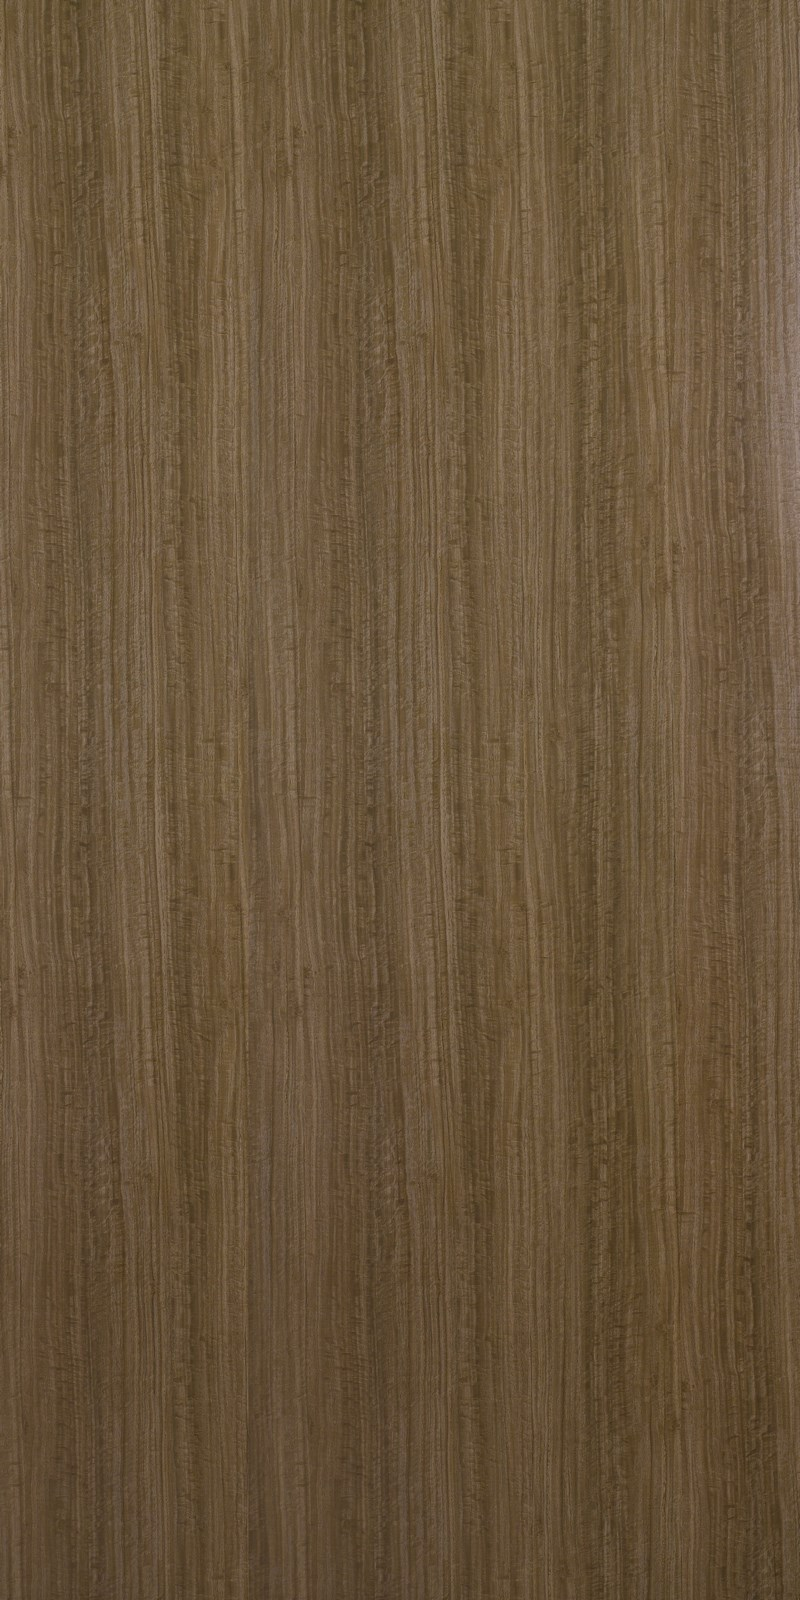 Buy Greenlam Handscaped Finish 8x4 Laminates Online At